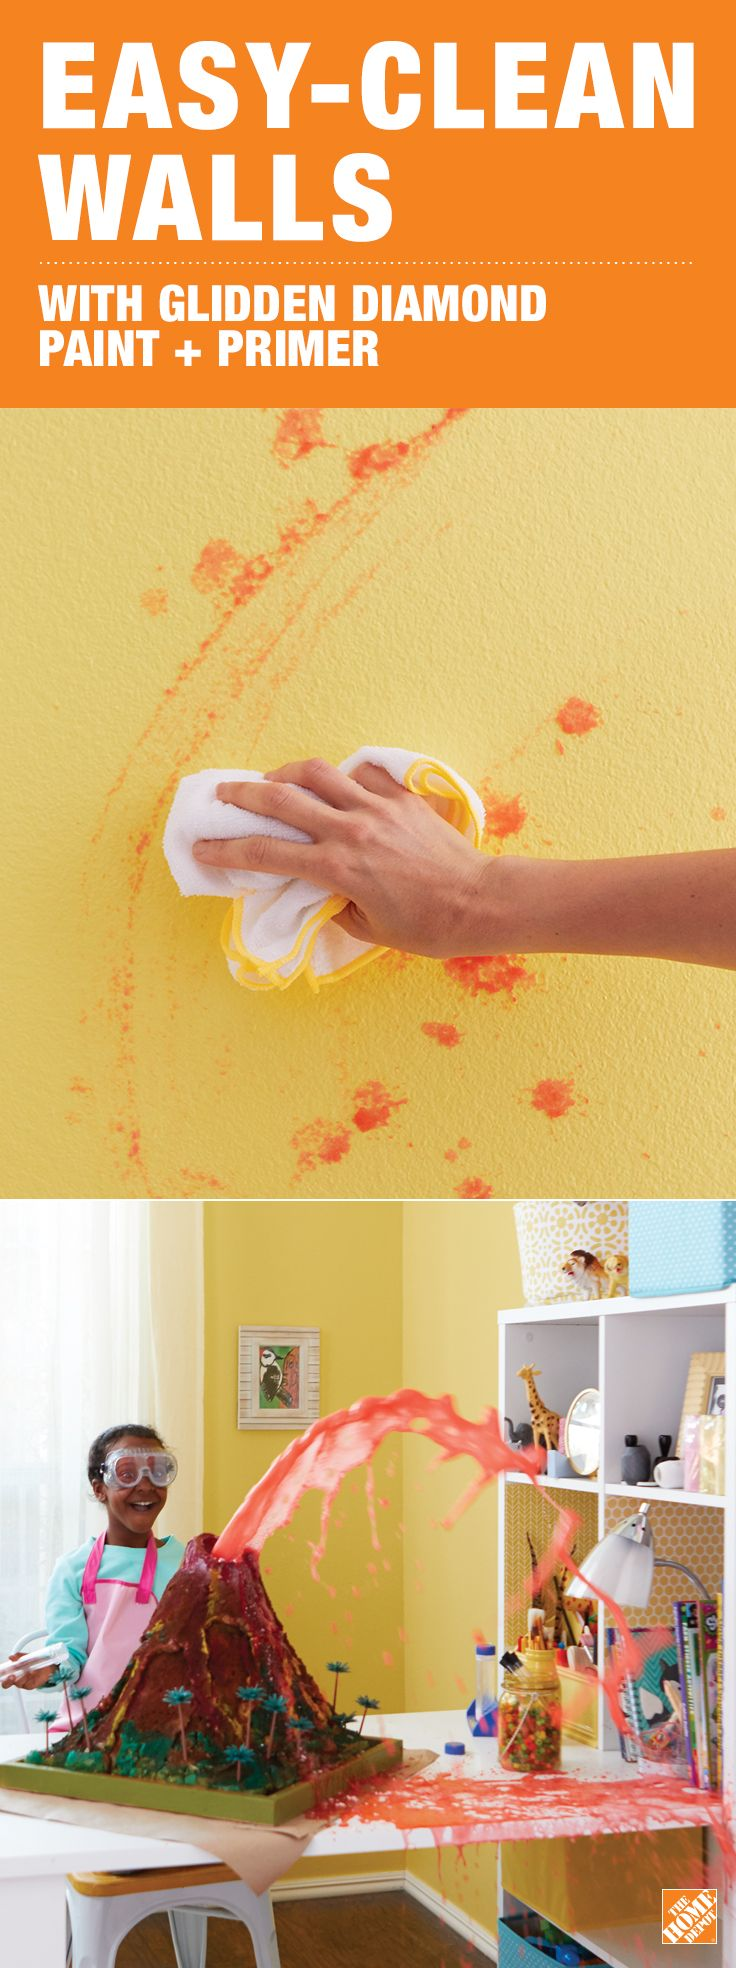 397 best CoLoR & WaLLs images on Pinterest | Bathrooms, Bedroom and ...